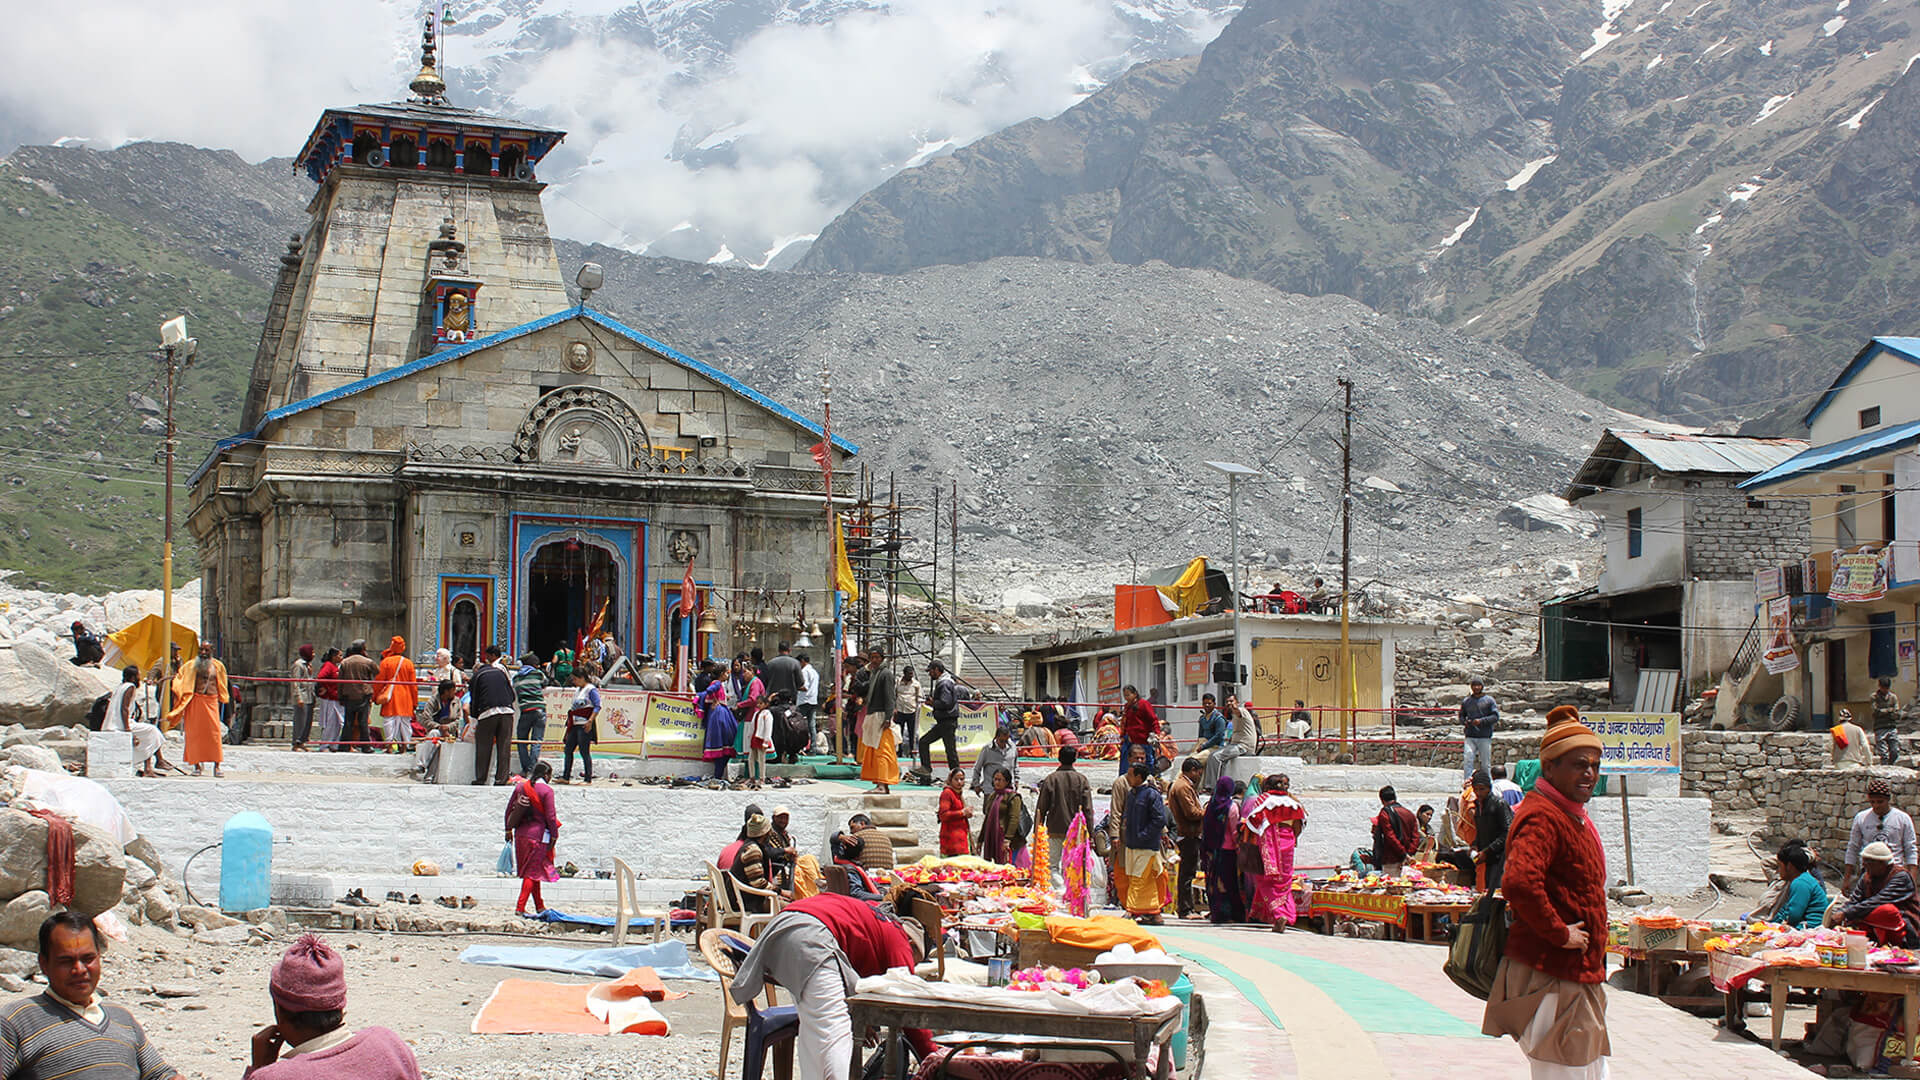 Shri kedarnath and shri badrinath dham yatra Ex- dehradun By Helicopter Same Day Return